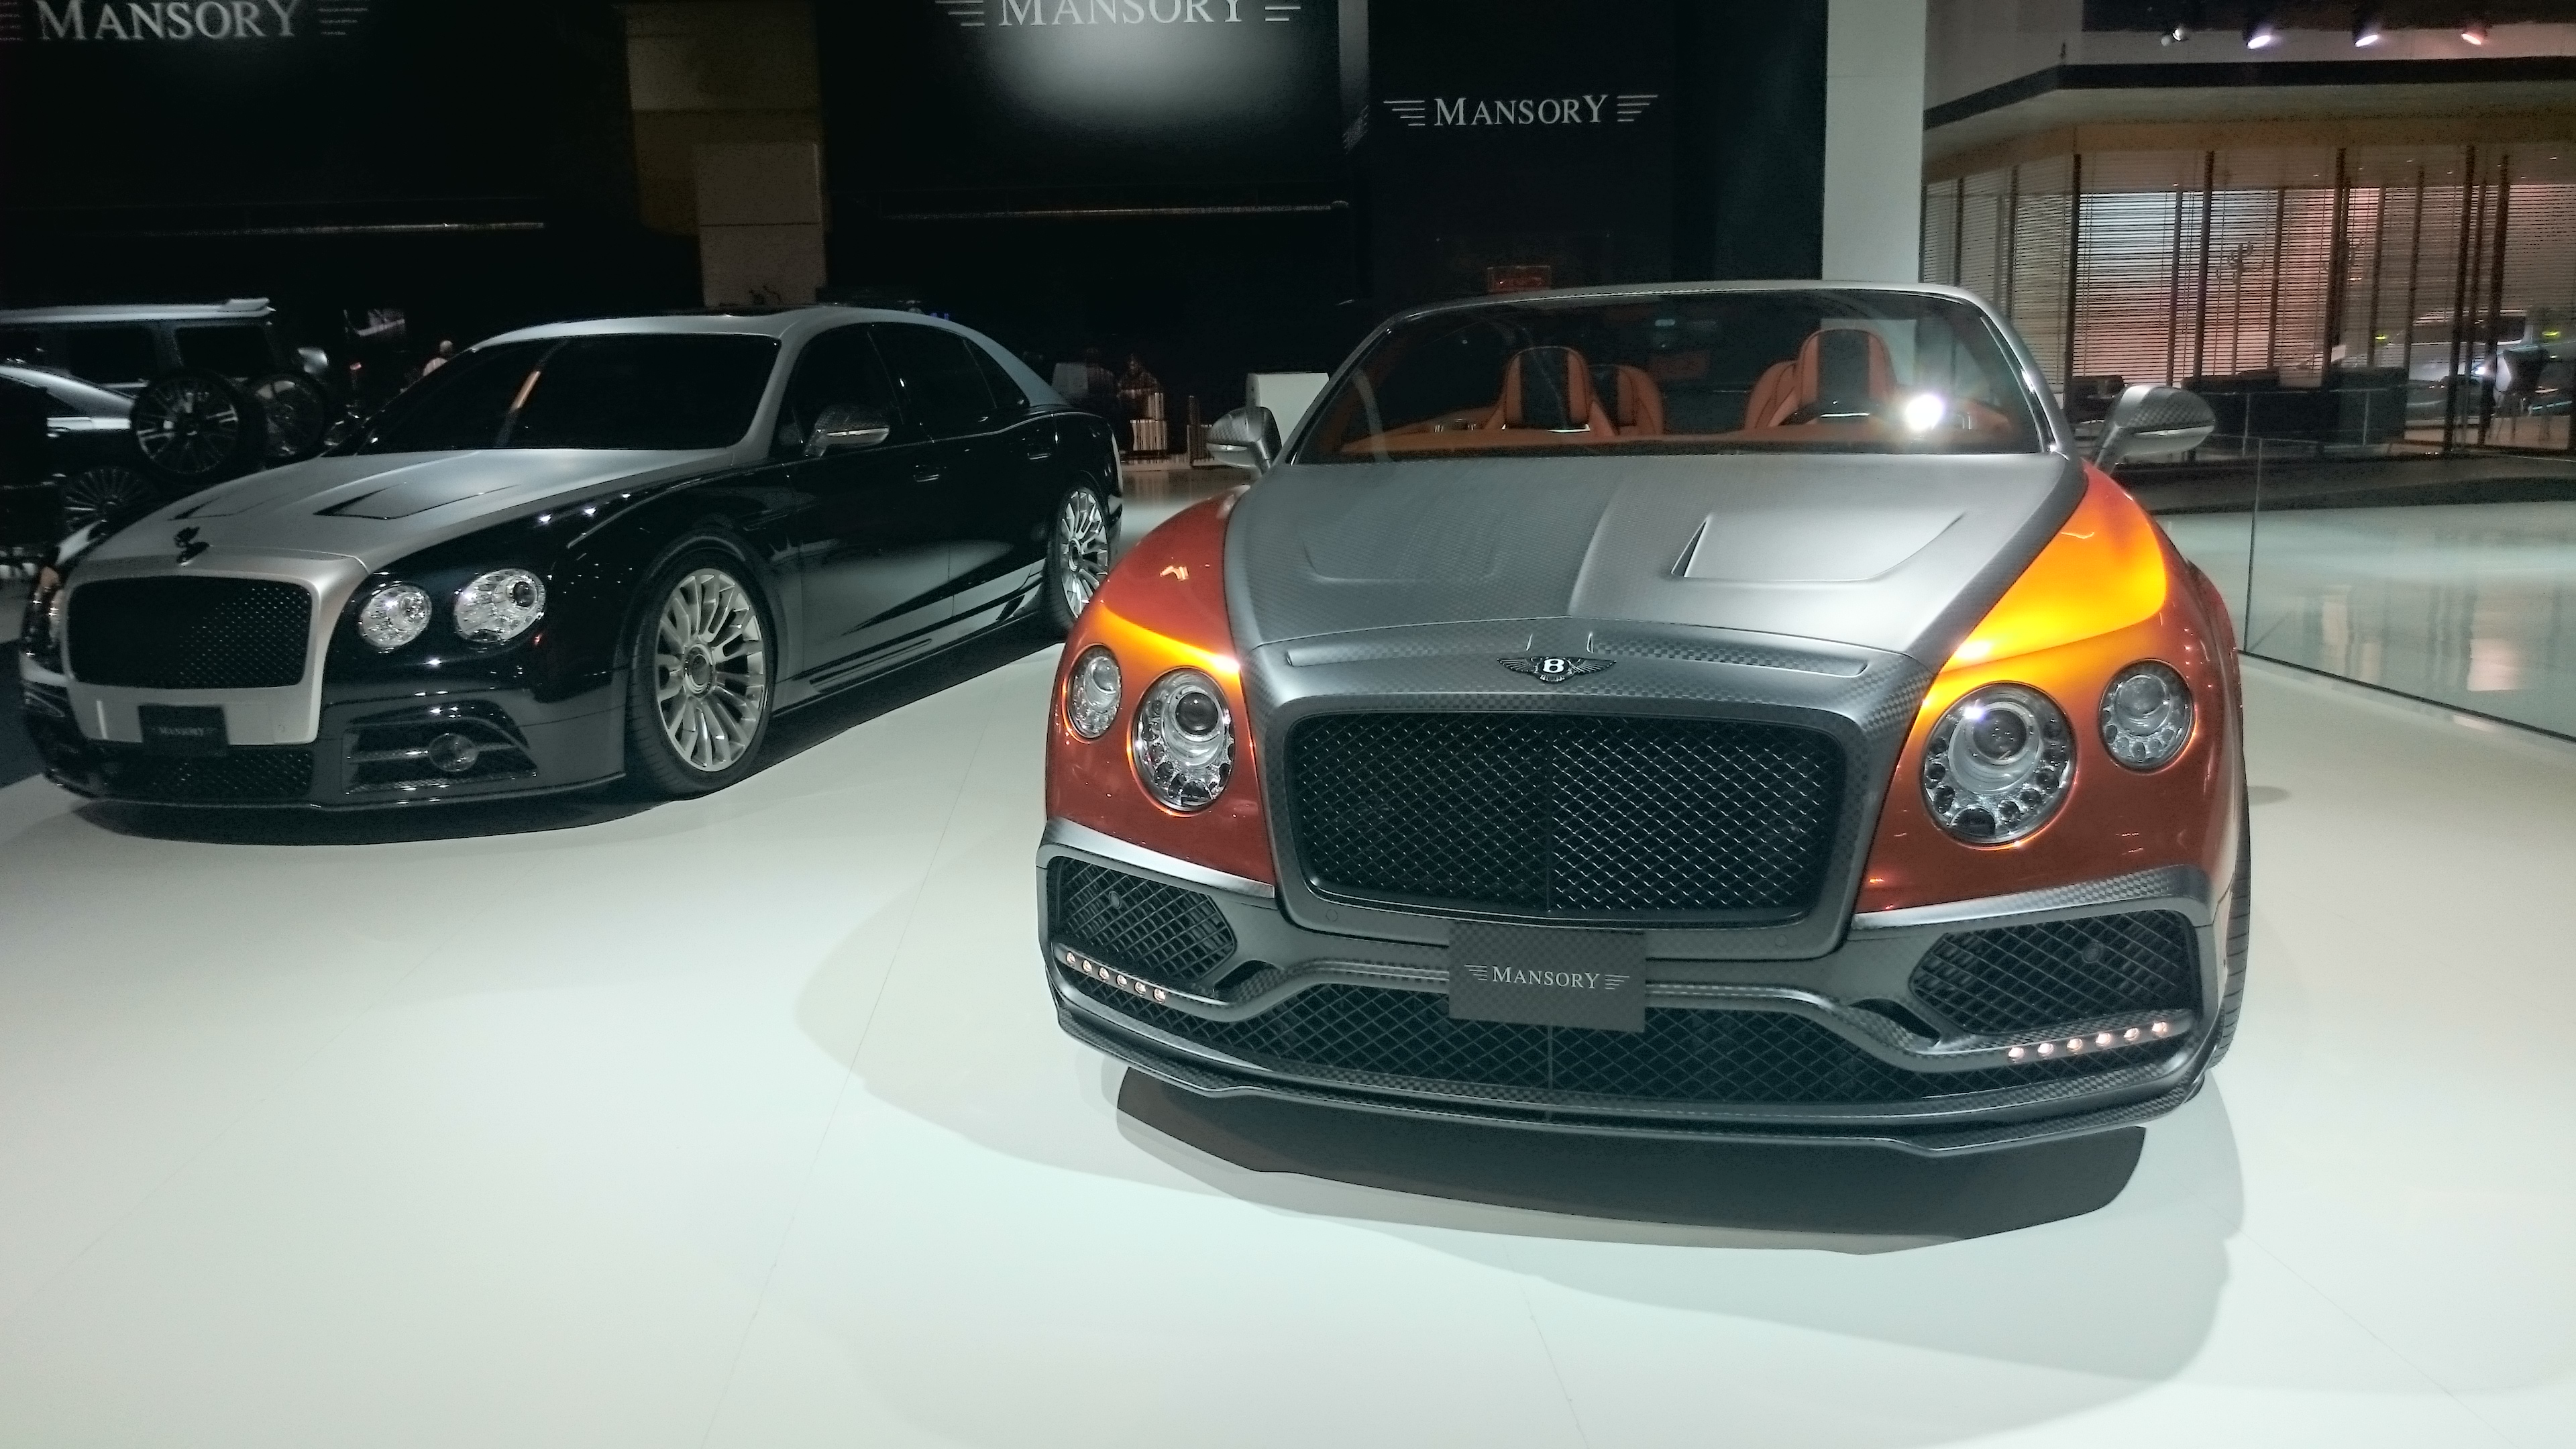 Fotos 360 del Bentley GTC SPEED MANSORY 2016 #VidePan en #IAA2015